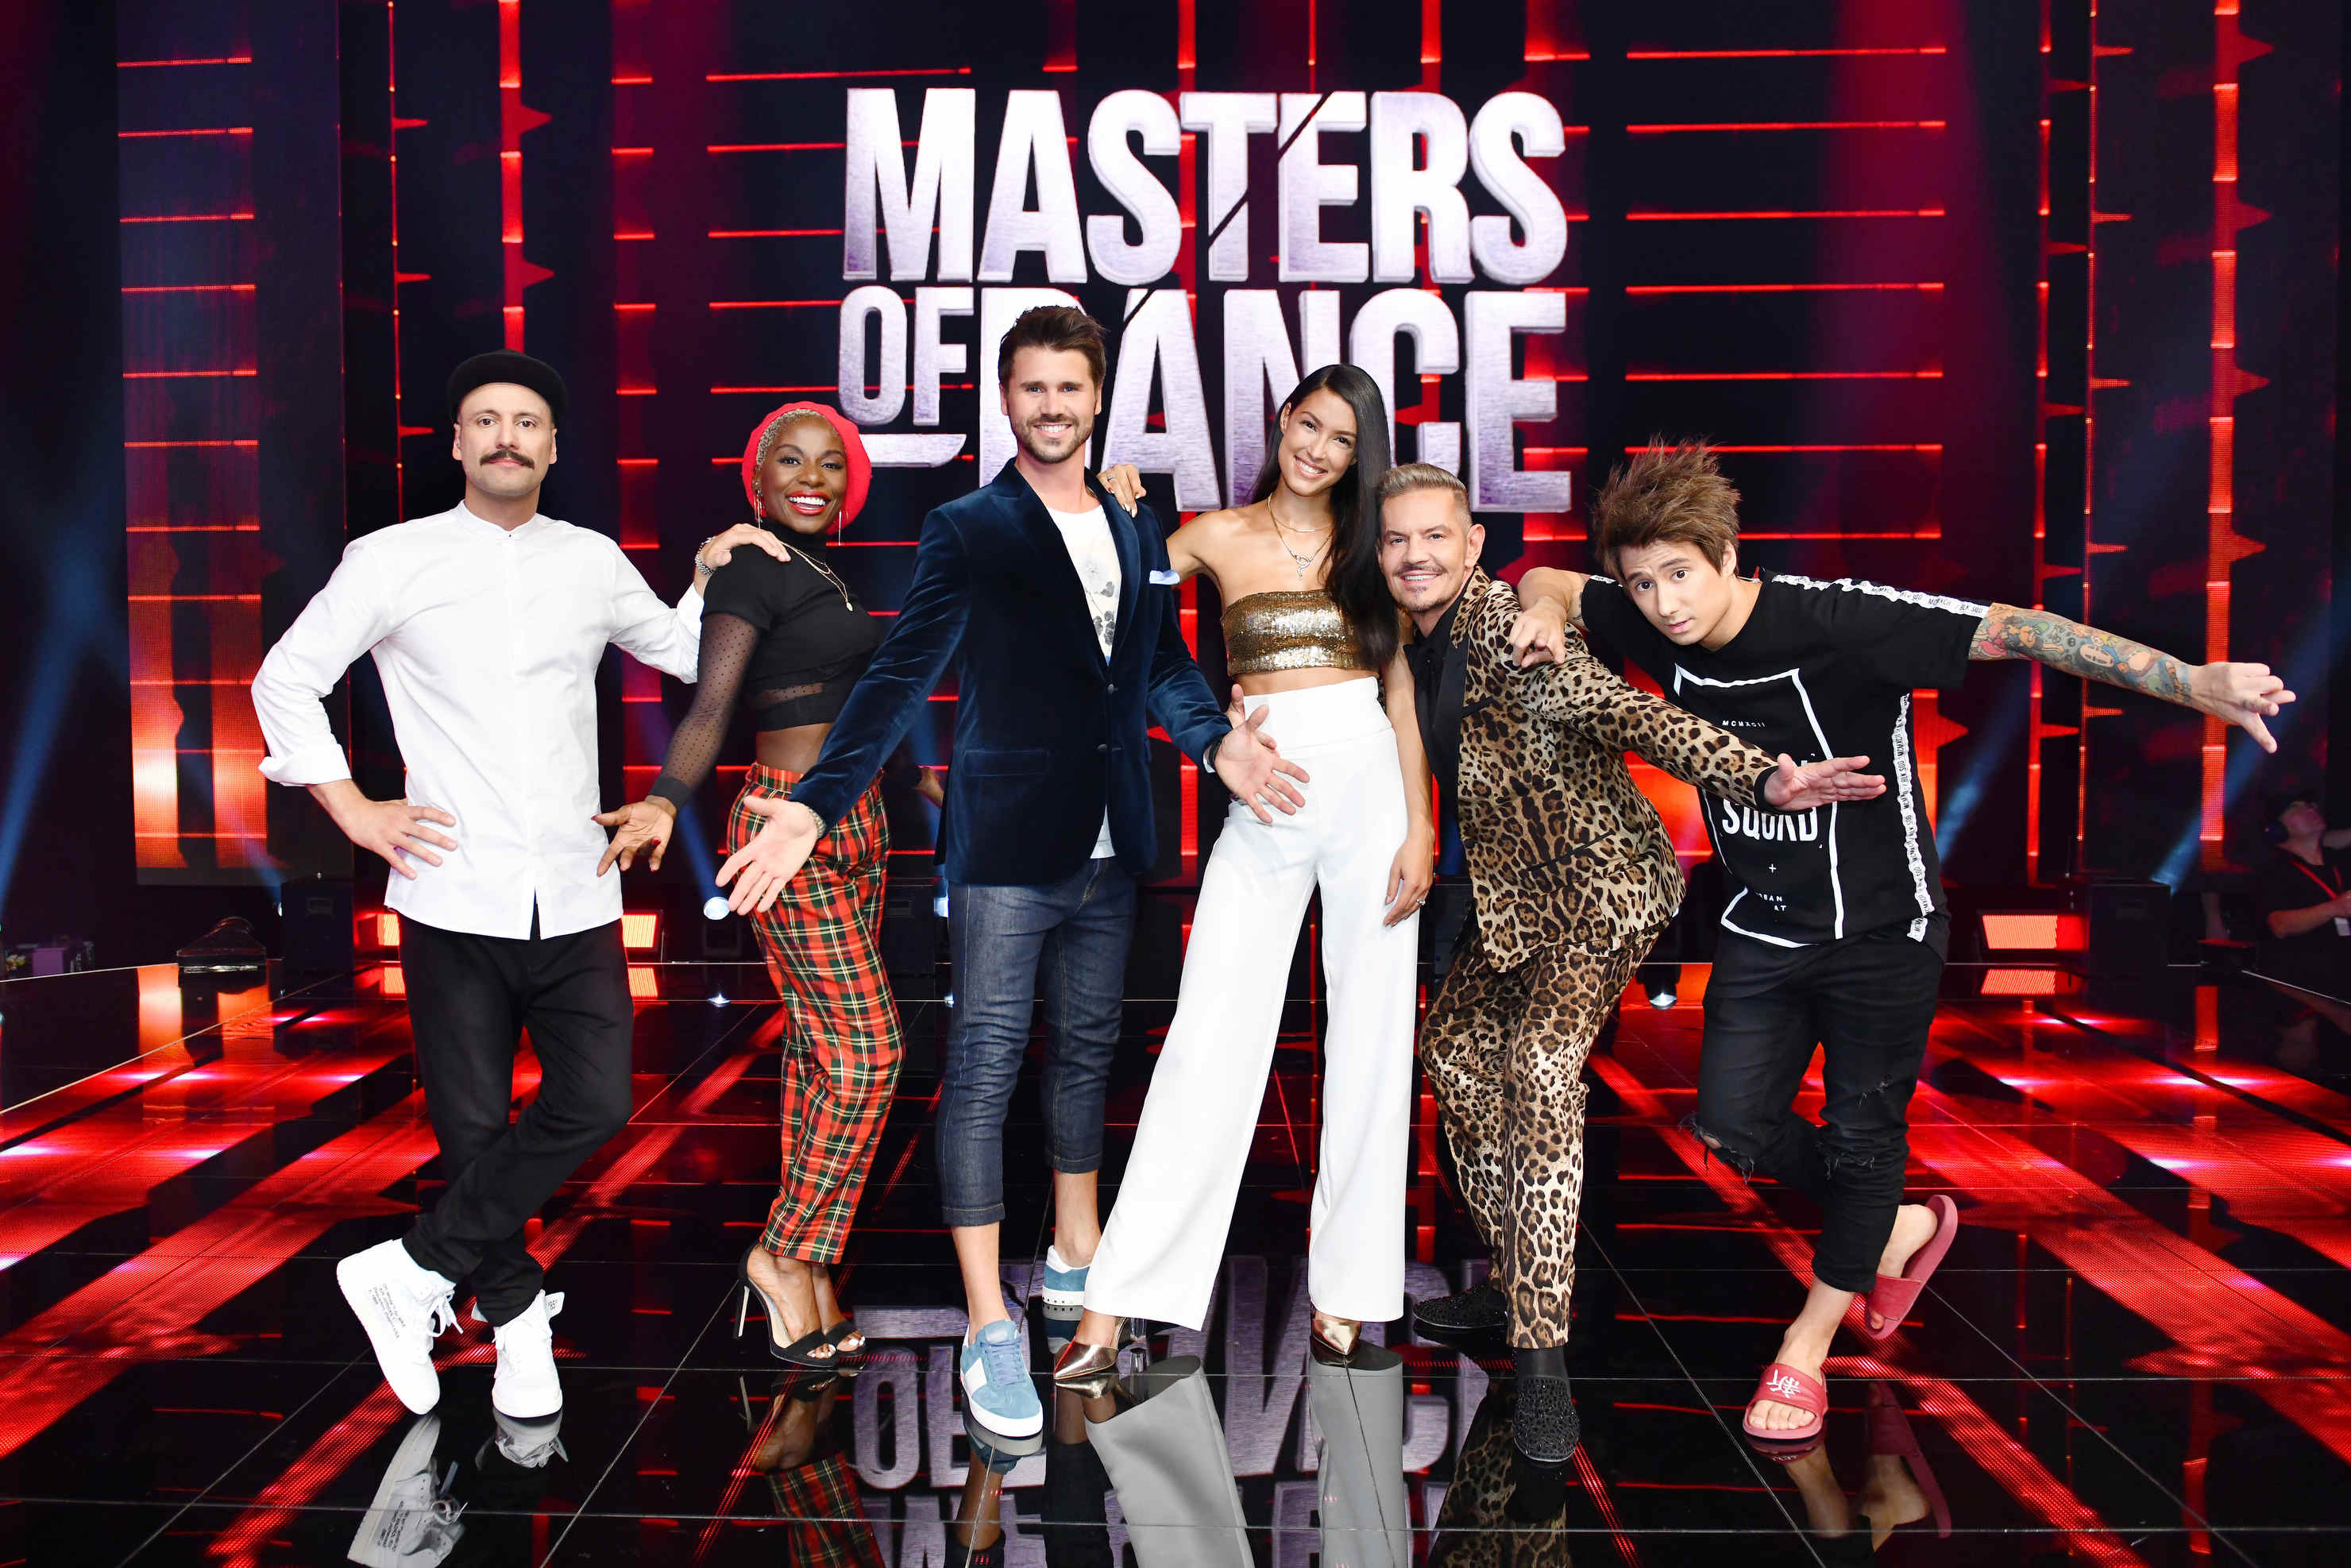 Pro 7 Masters Of Dance